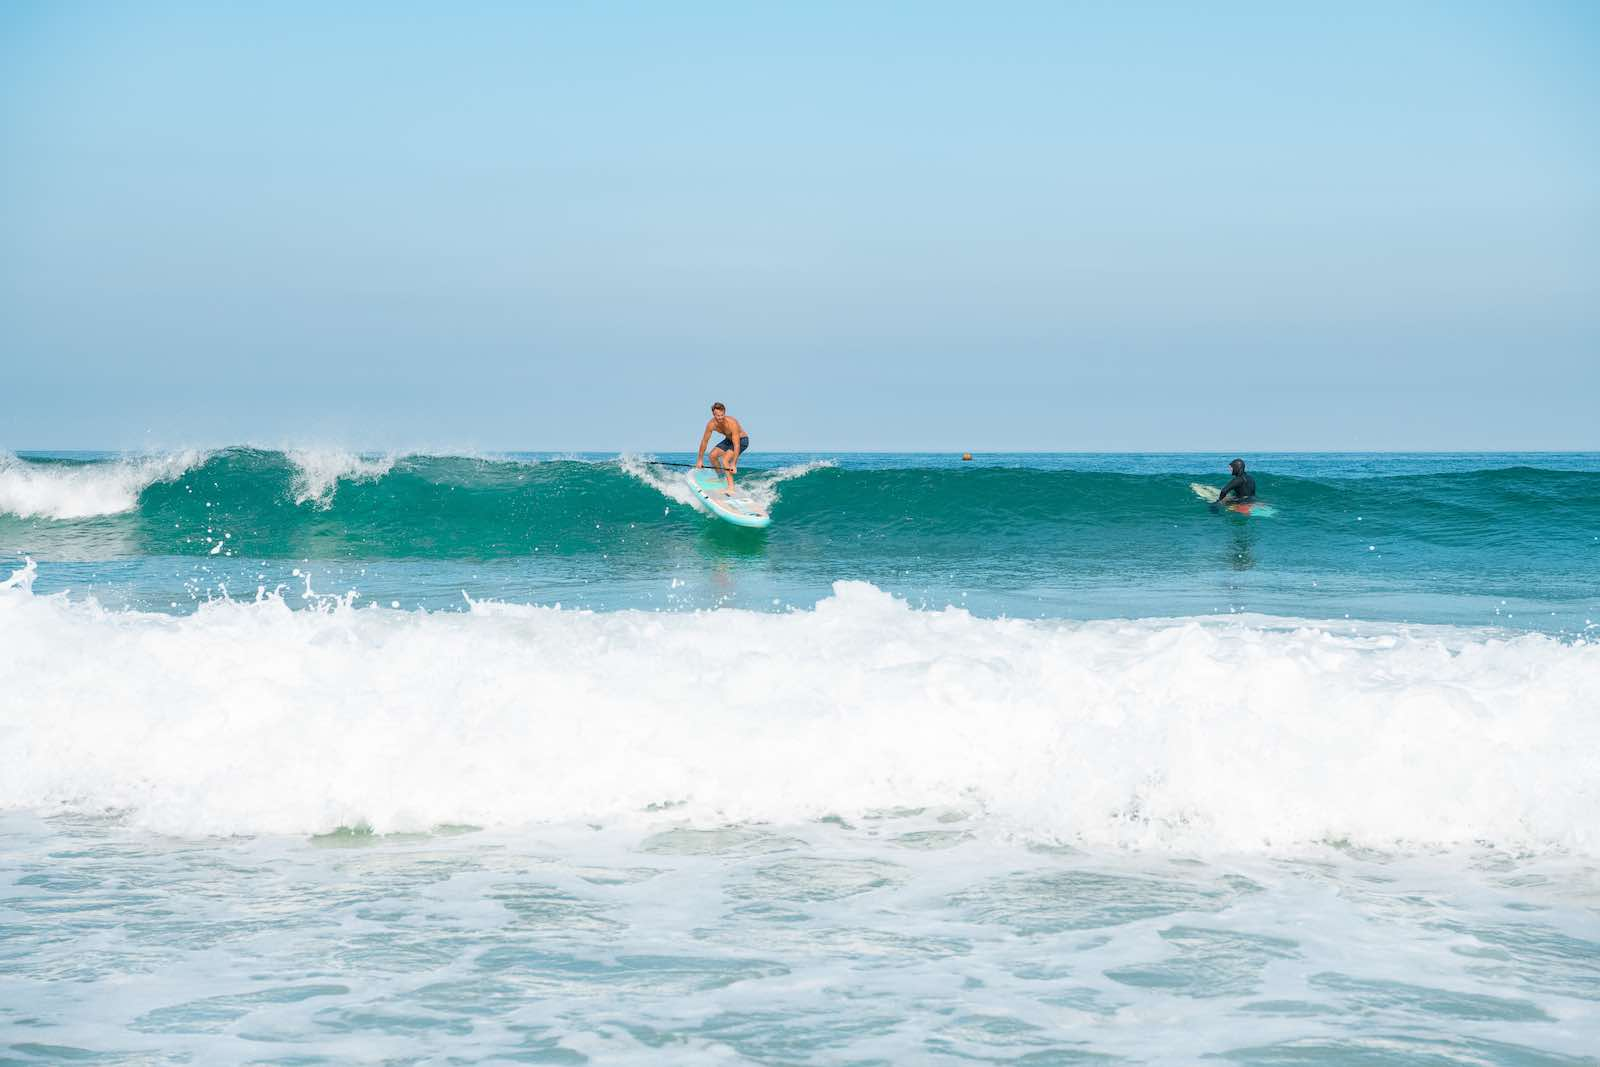 SUP Surfing Safety: 6 Tips for Staying Safe in the Surf